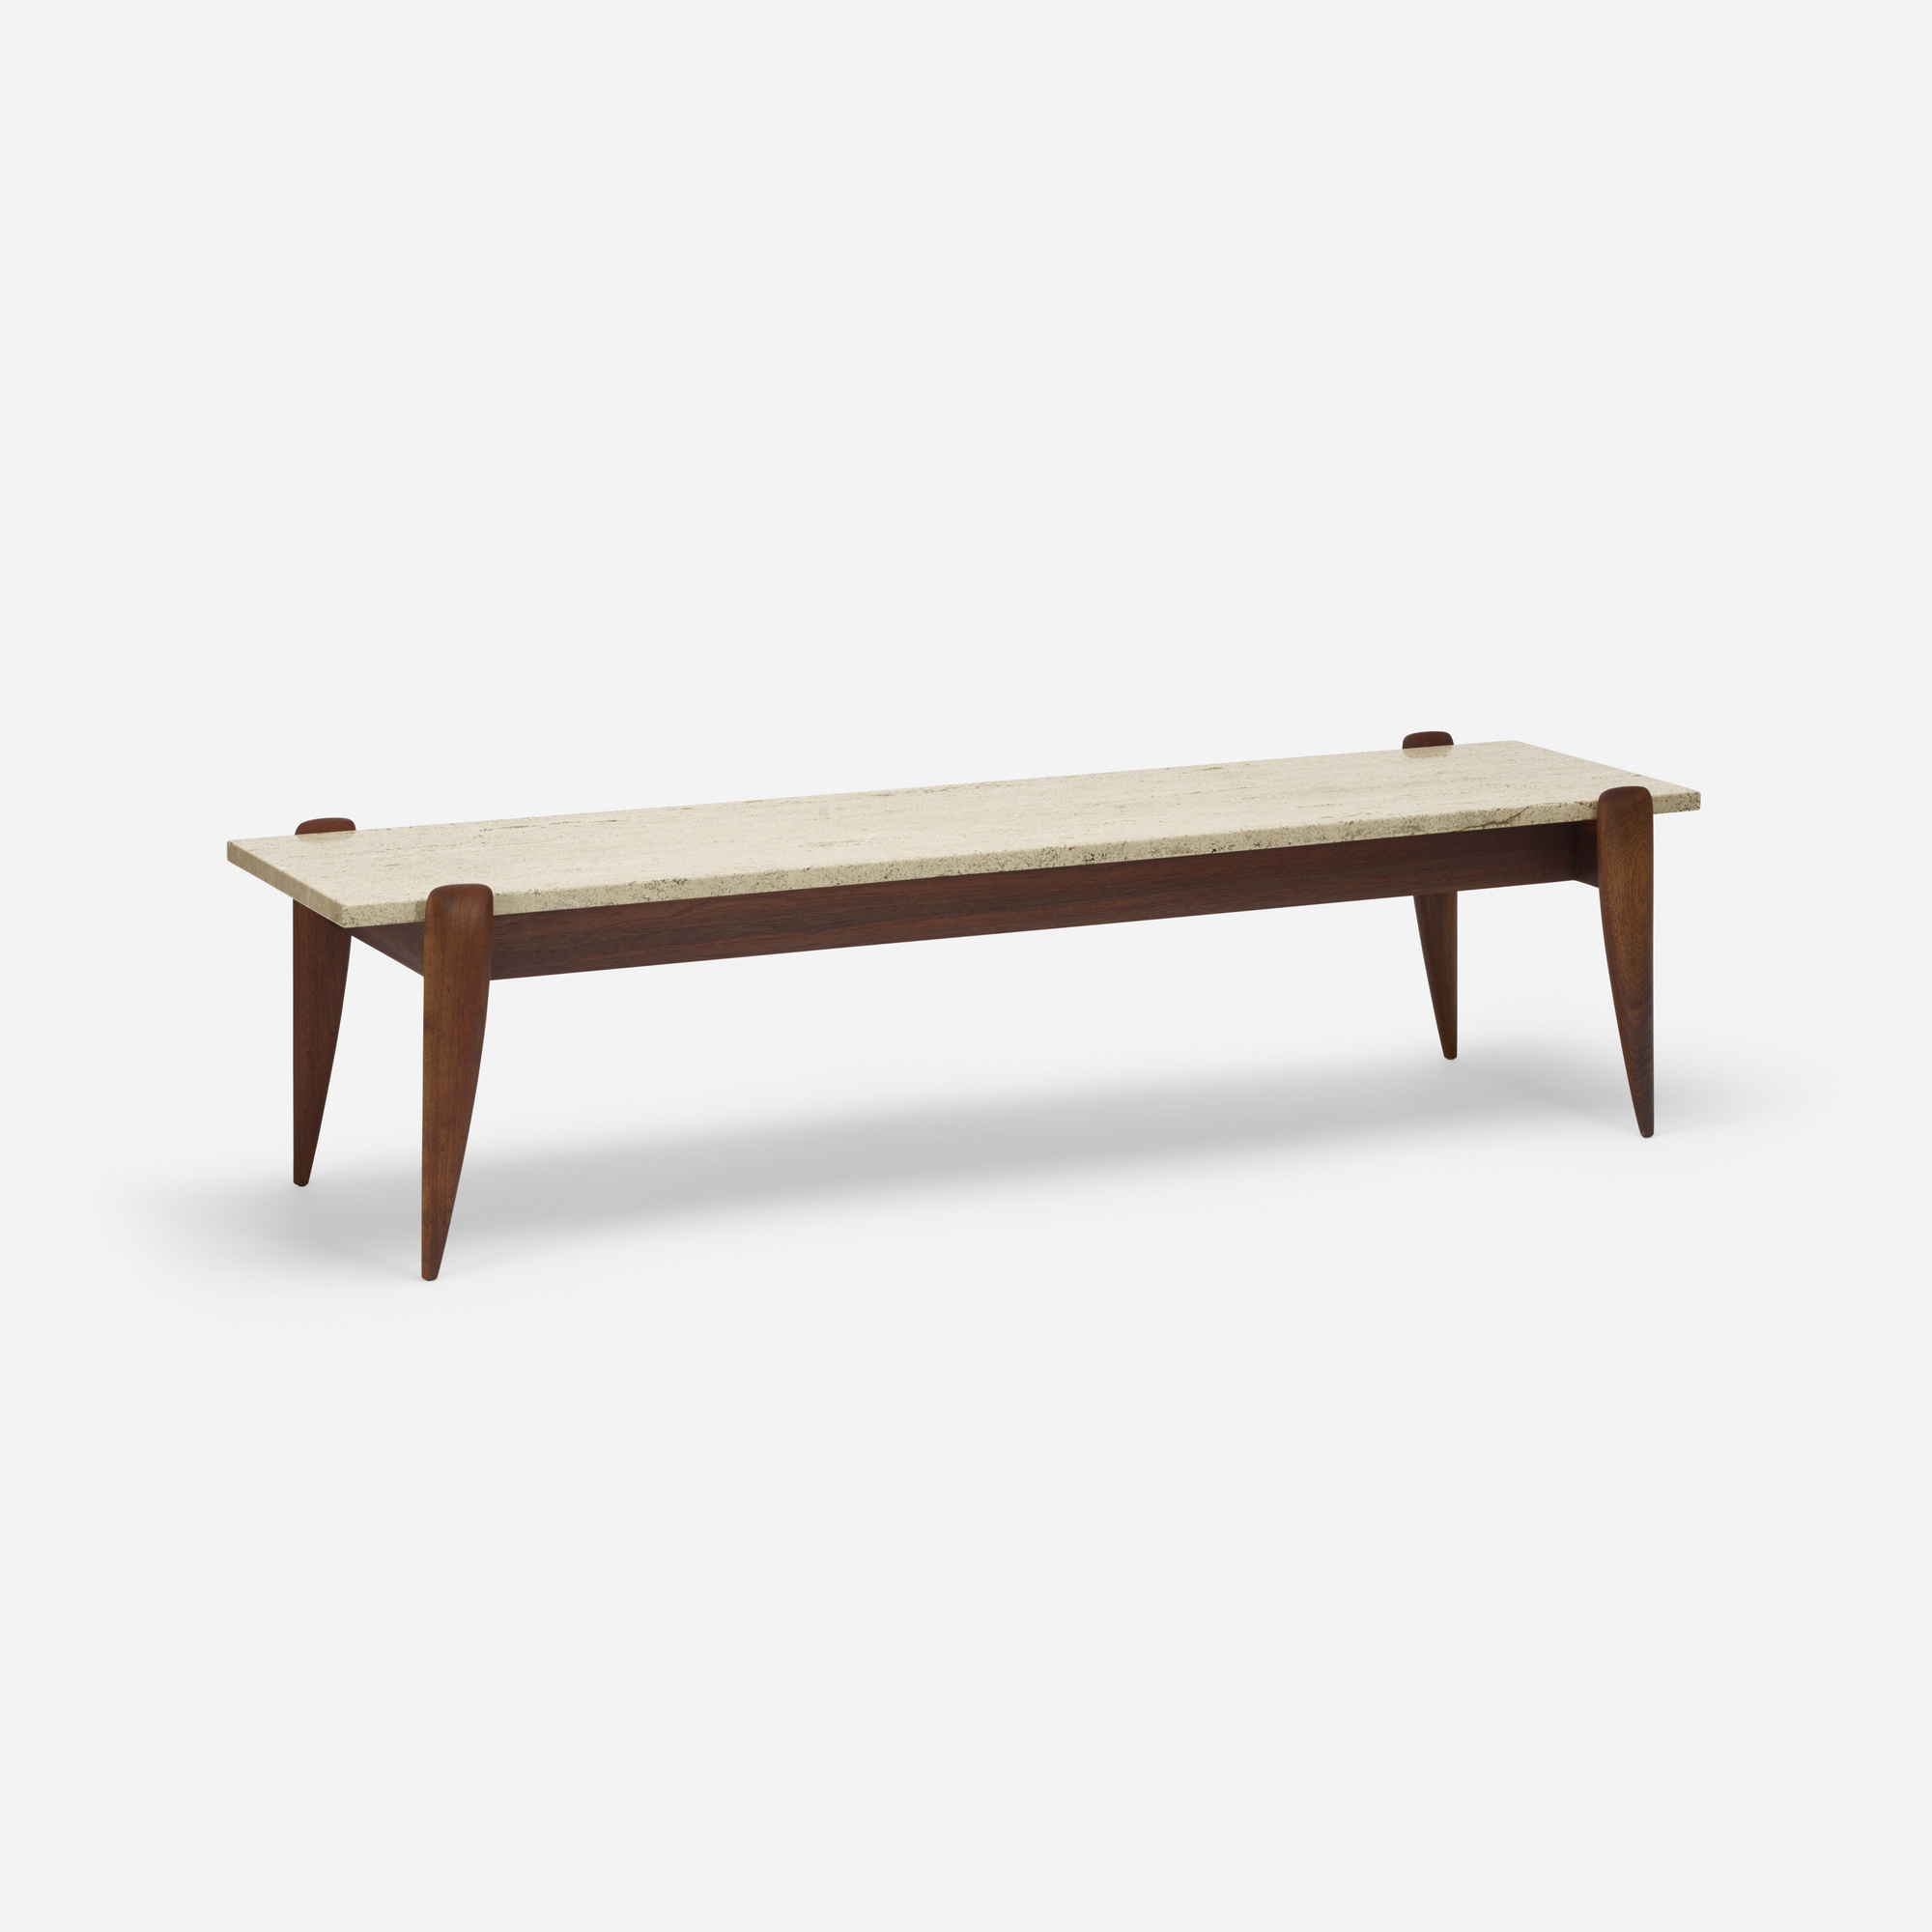 142: Gio Ponti / coffee table (1 of 2)